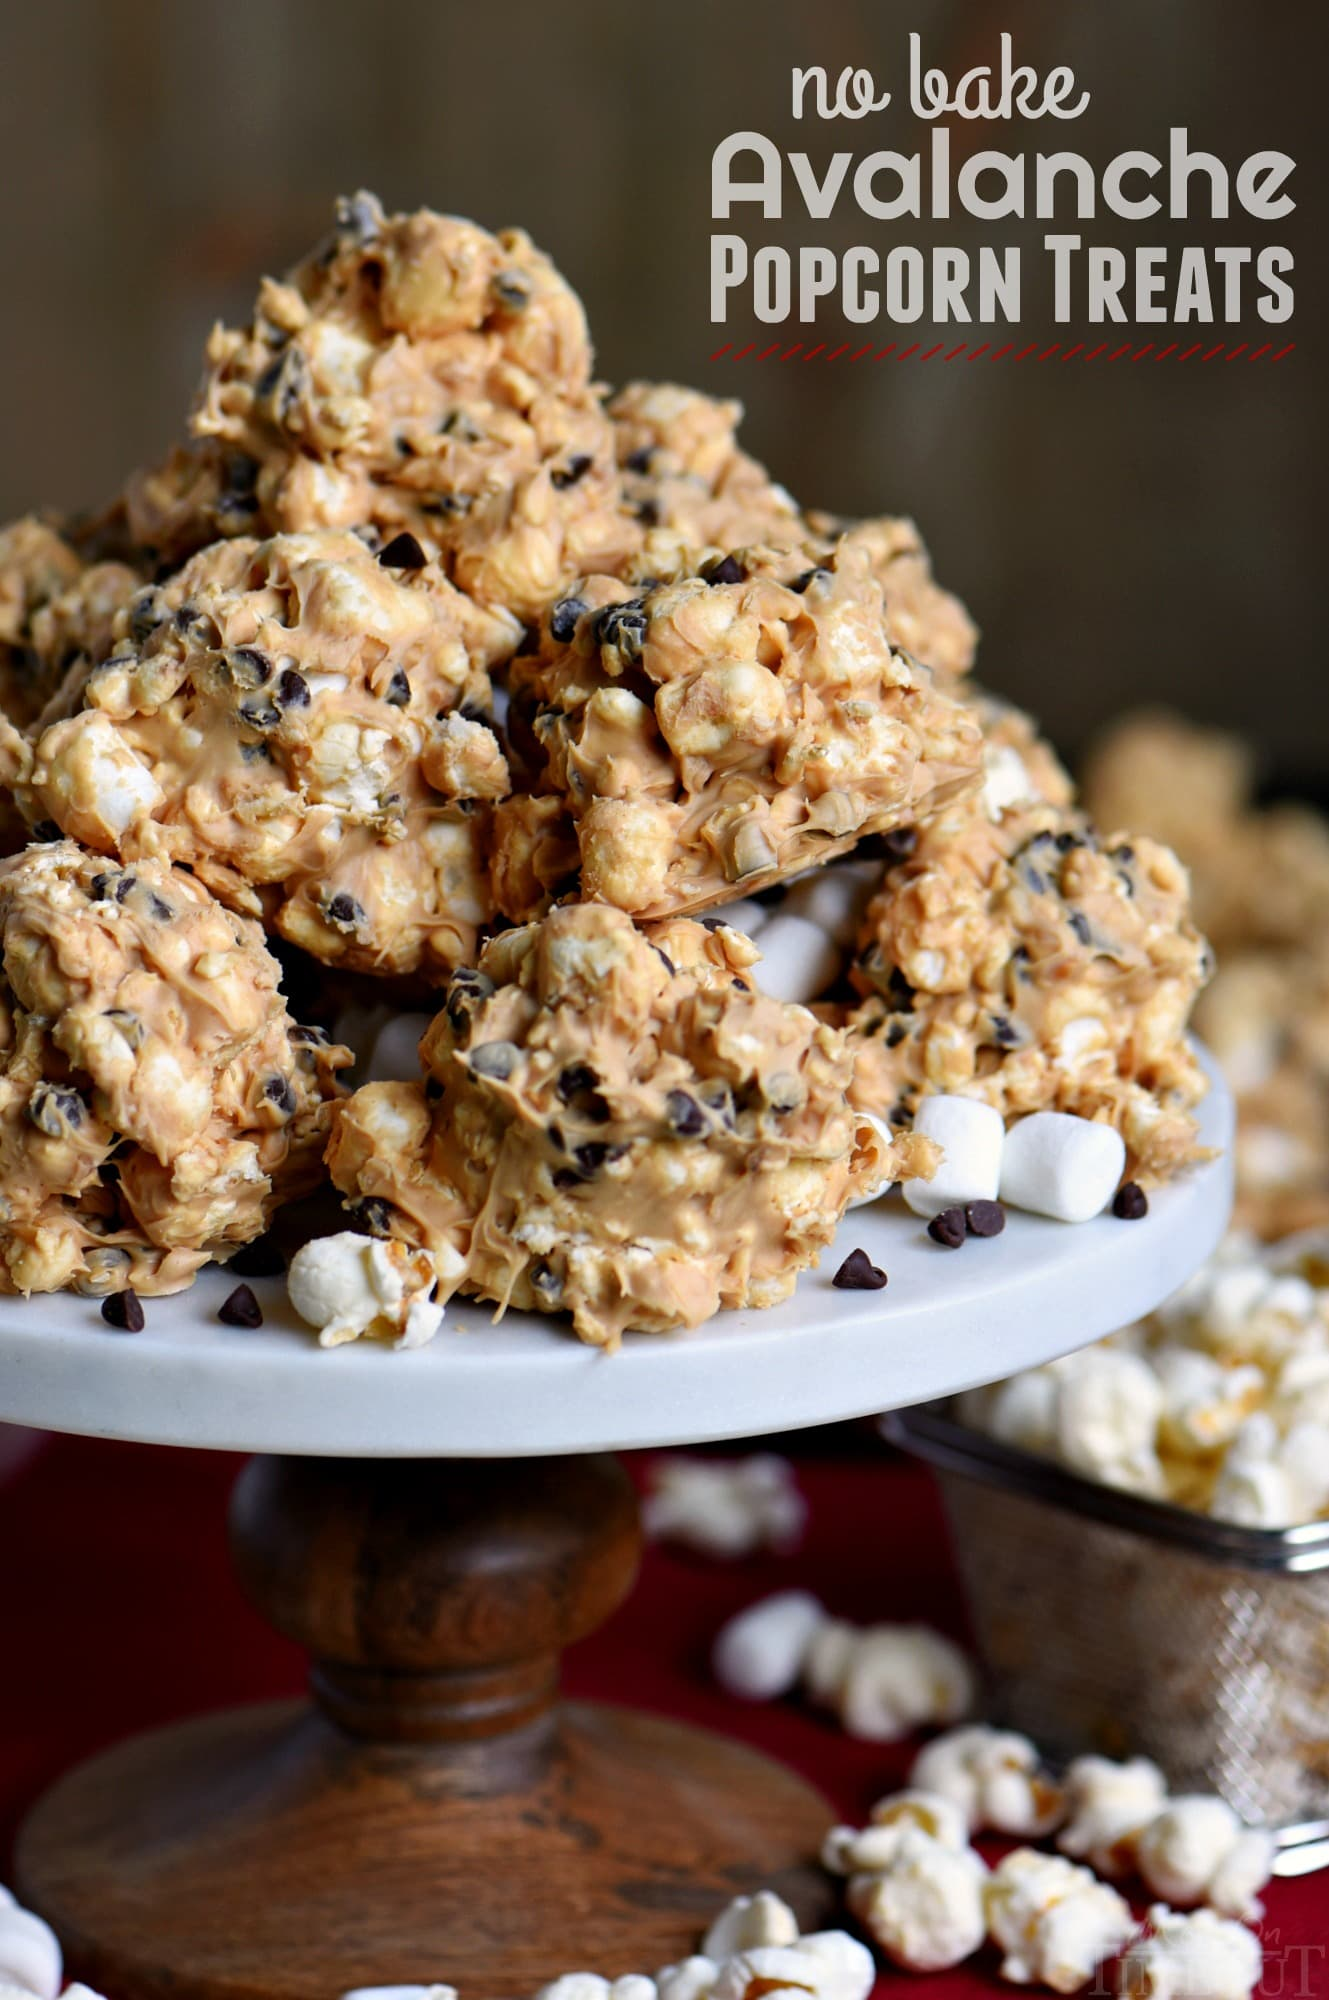 No Bake Avalanche Popcorn Treats